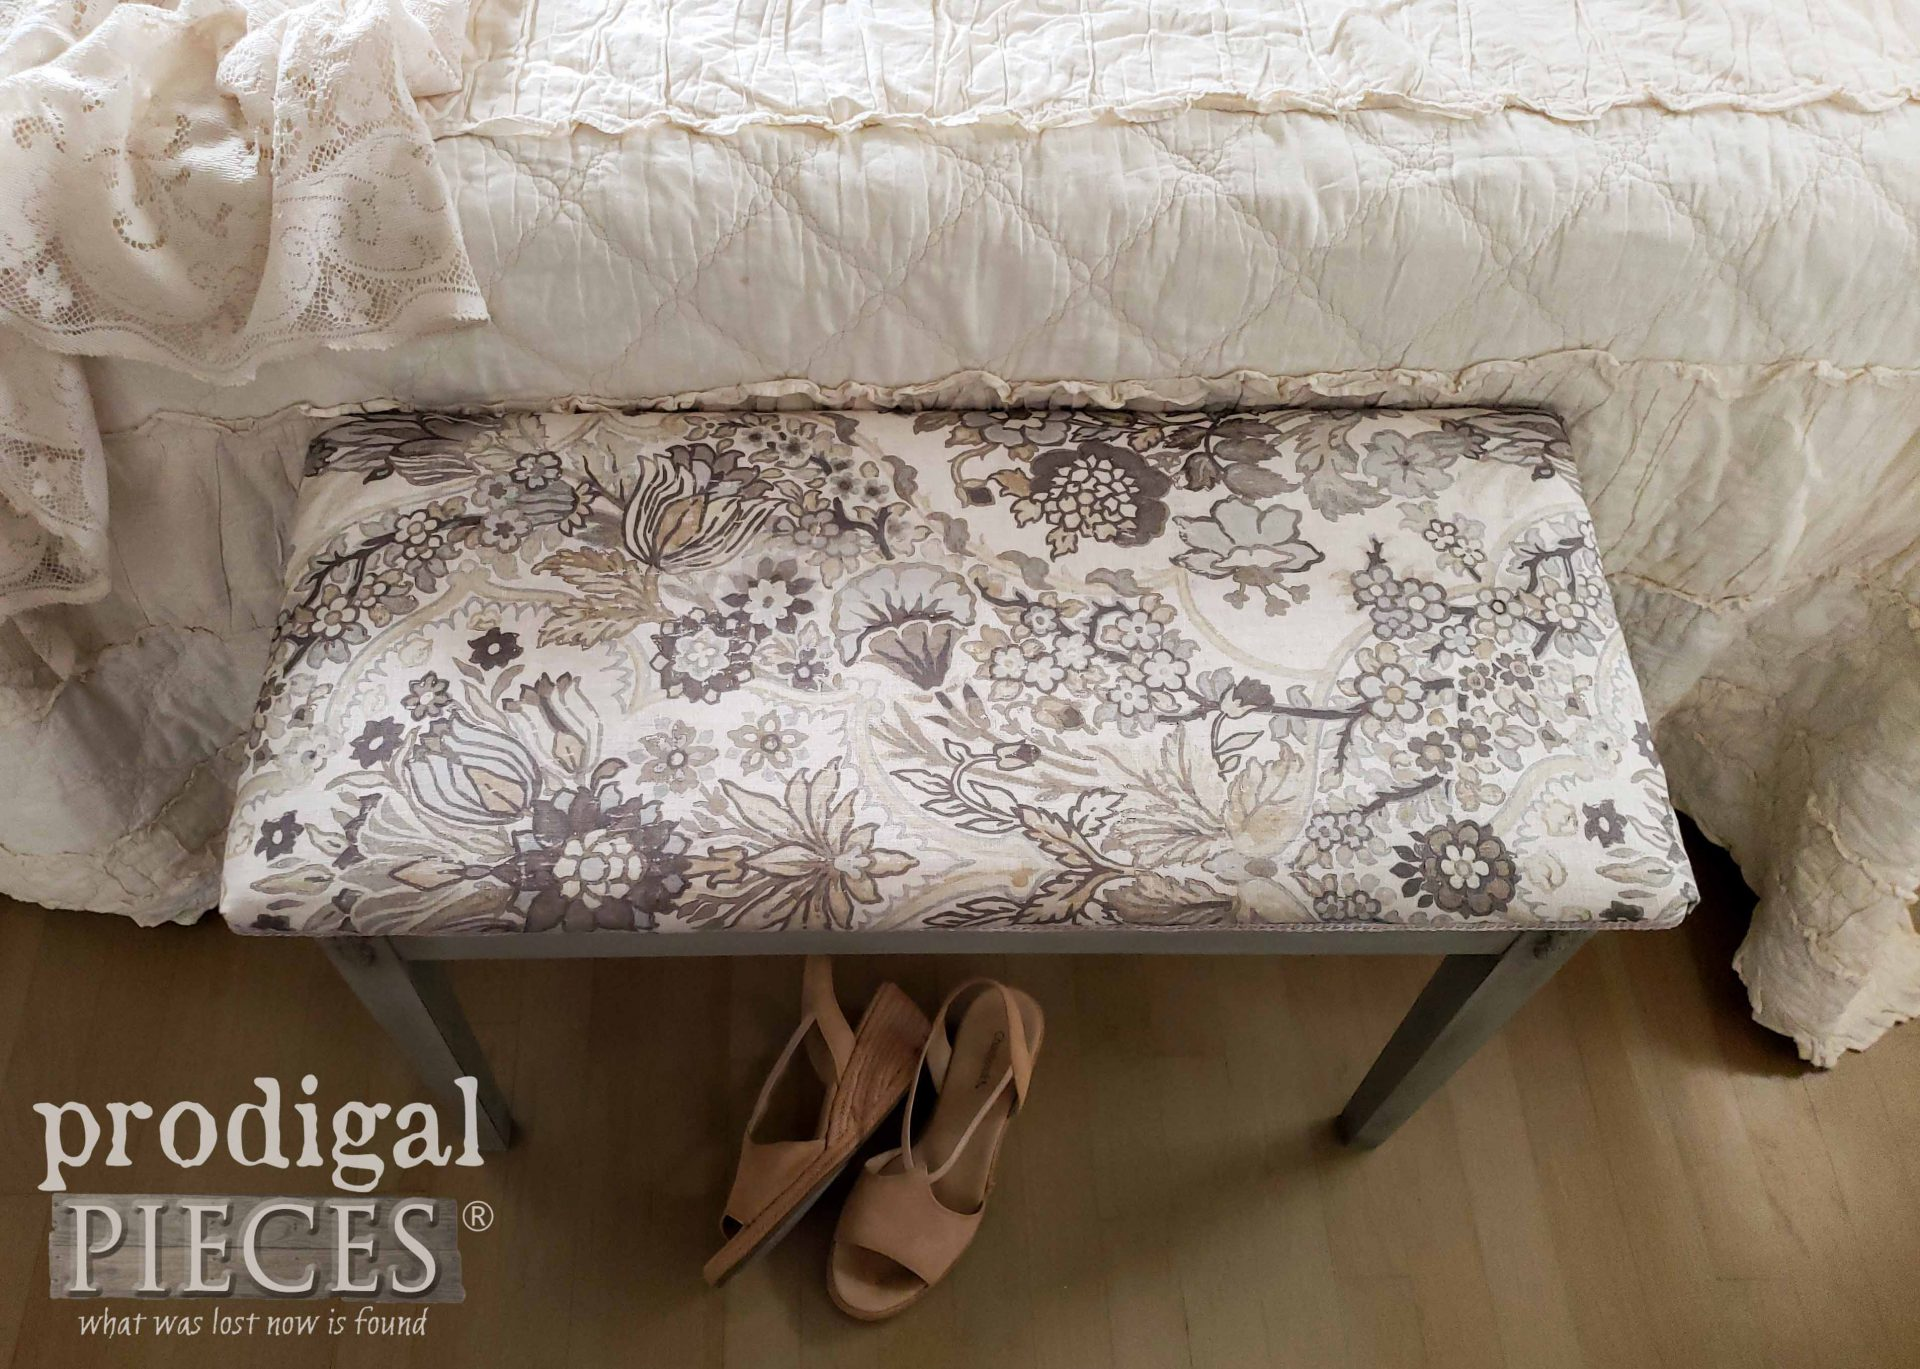 Linen Upholstery on Vintage Piano Bench Makeover by Larissa of Prodigal Pieces | prodigalpieces.com #prodigalpieces #diy #home #homedecor #furniture